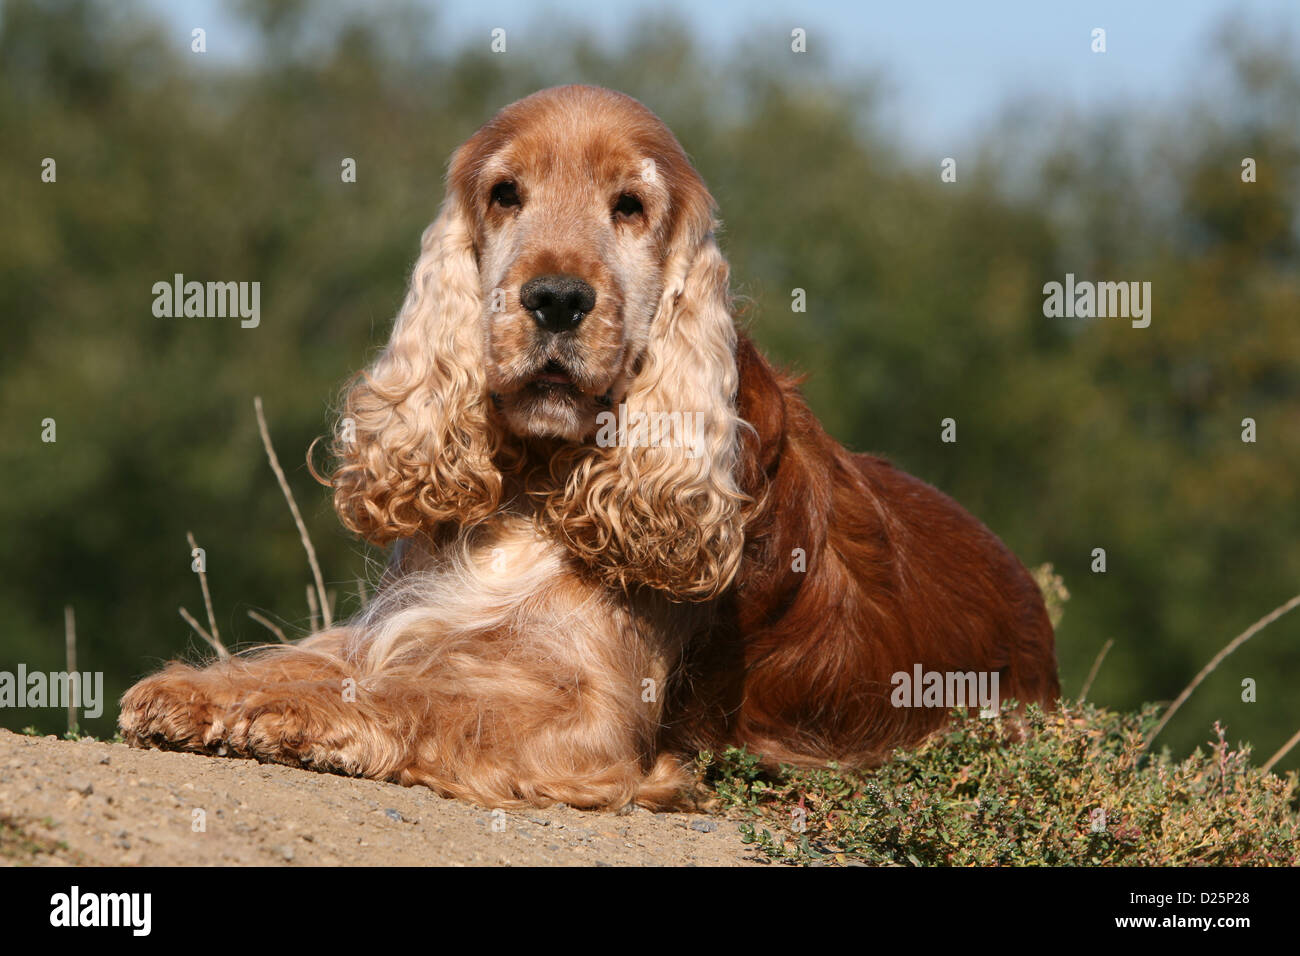 Adult english cocker spaniel